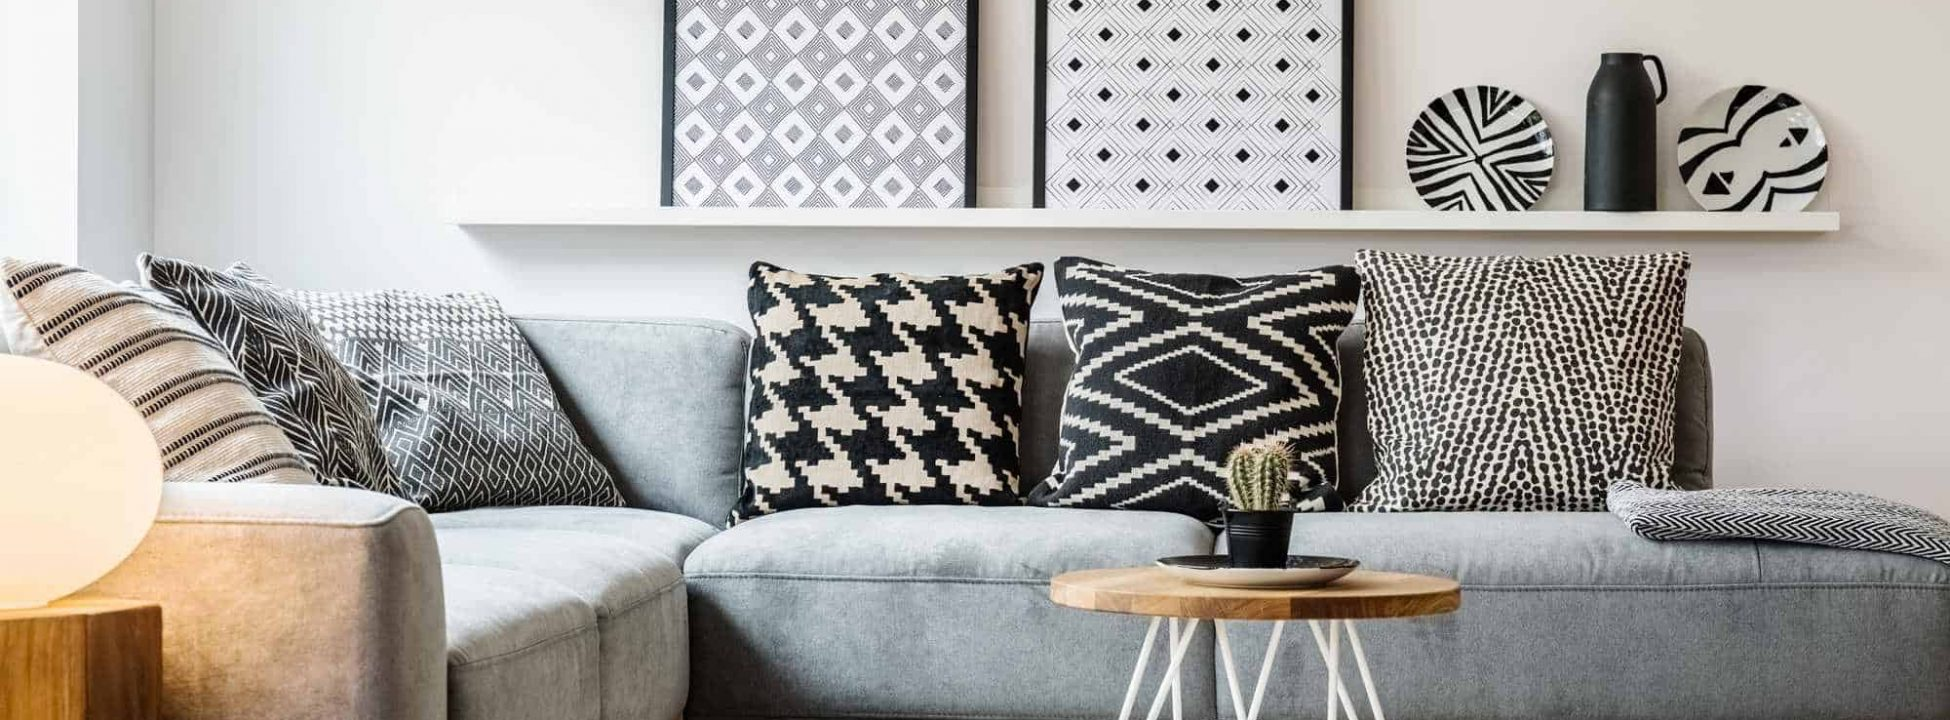 photodune-22350383-patterned-pillows-on-grey-corner-sofa-in-apartment-interior-with-xxl-1